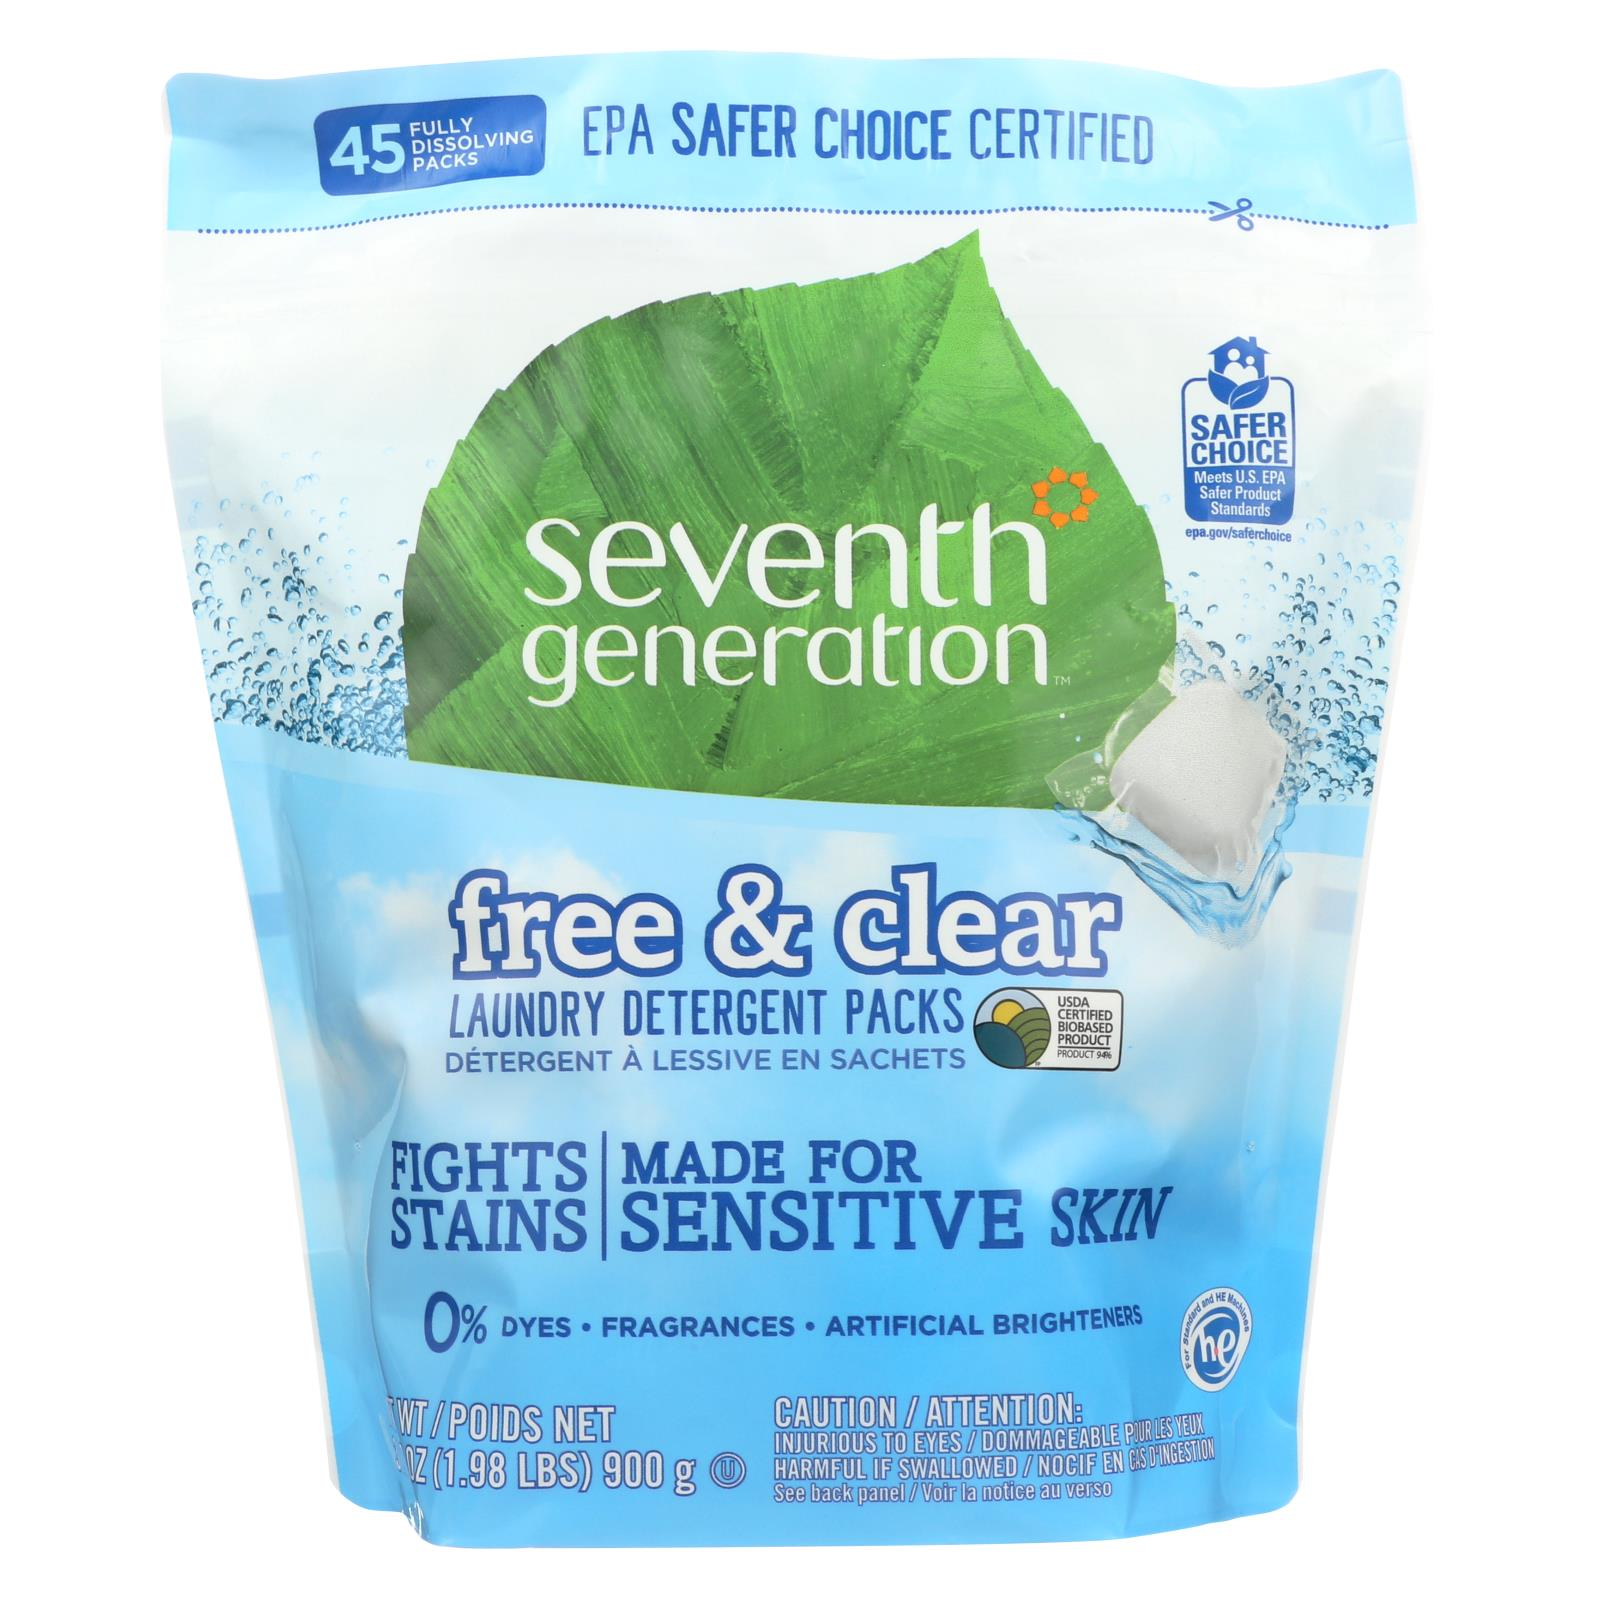 Buy Seventh Generation Laundry Detergent - Packs - Case of 8 - 45 count - Laundry from Veroeco.com